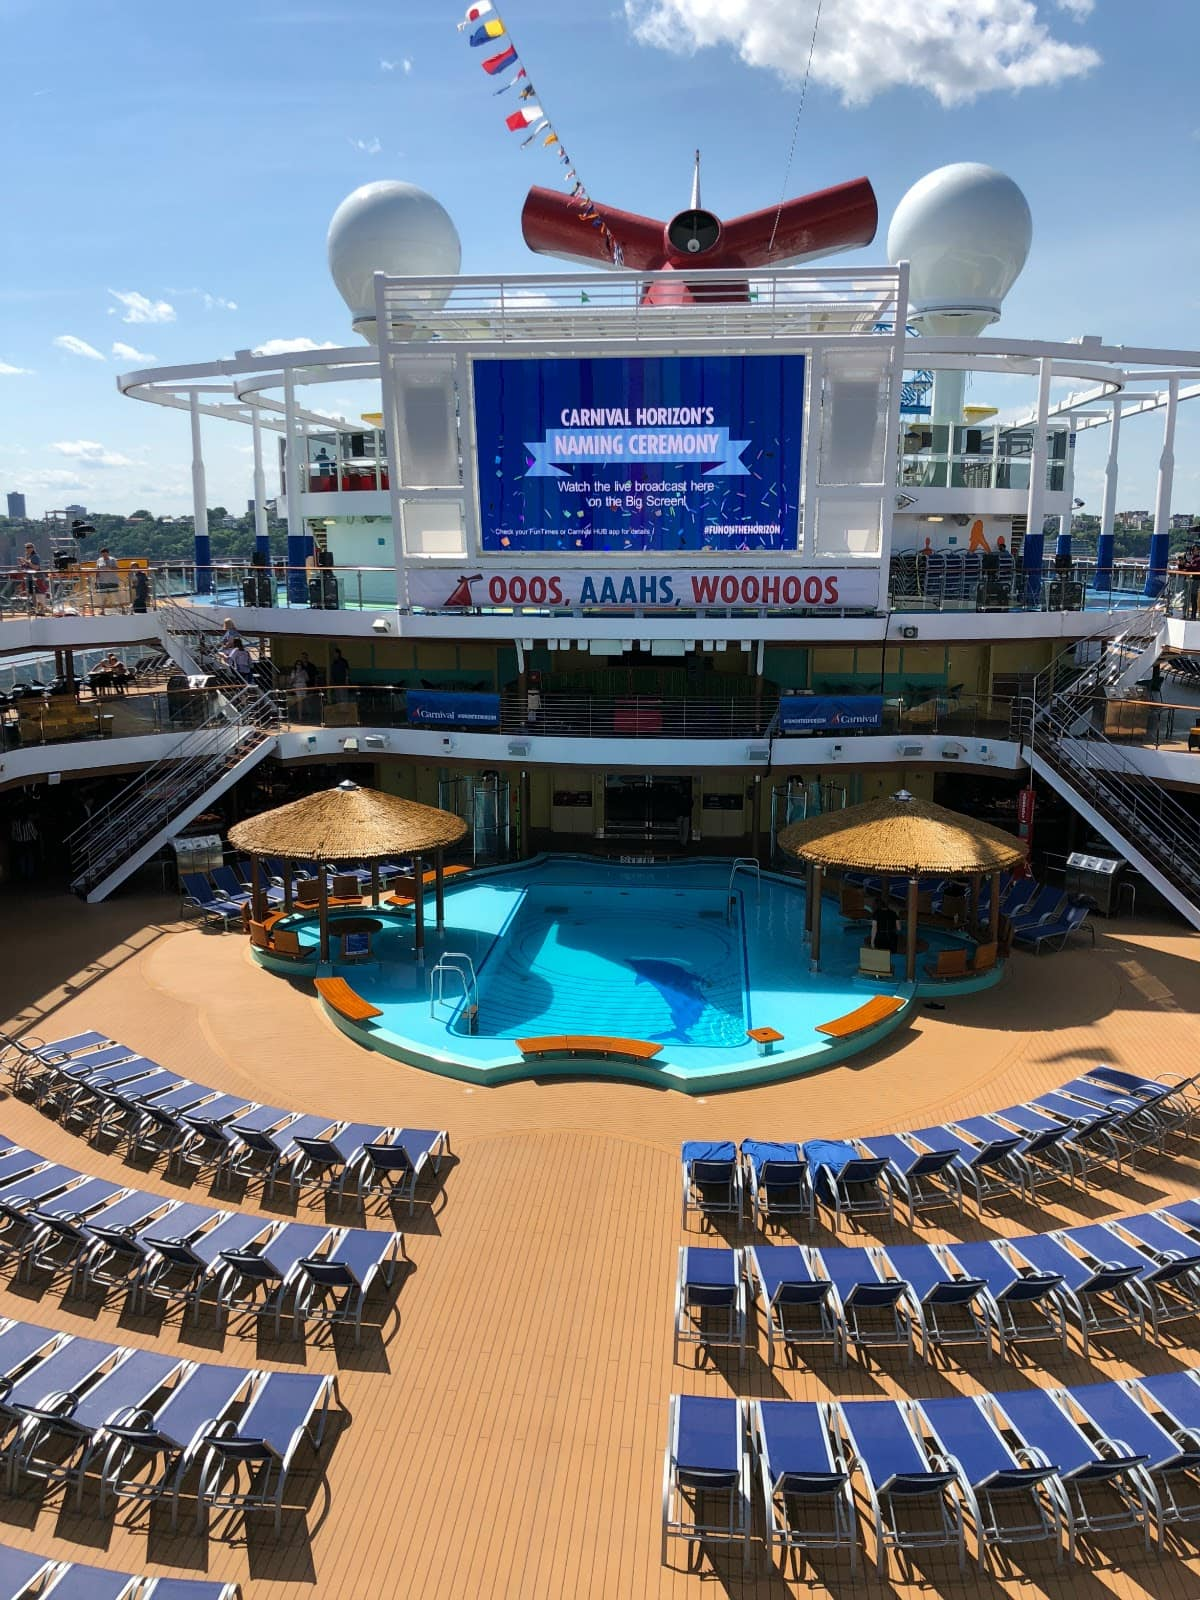 Carnival Horizon Official Naming Ceremony In Nyc Pretty Extraordinary